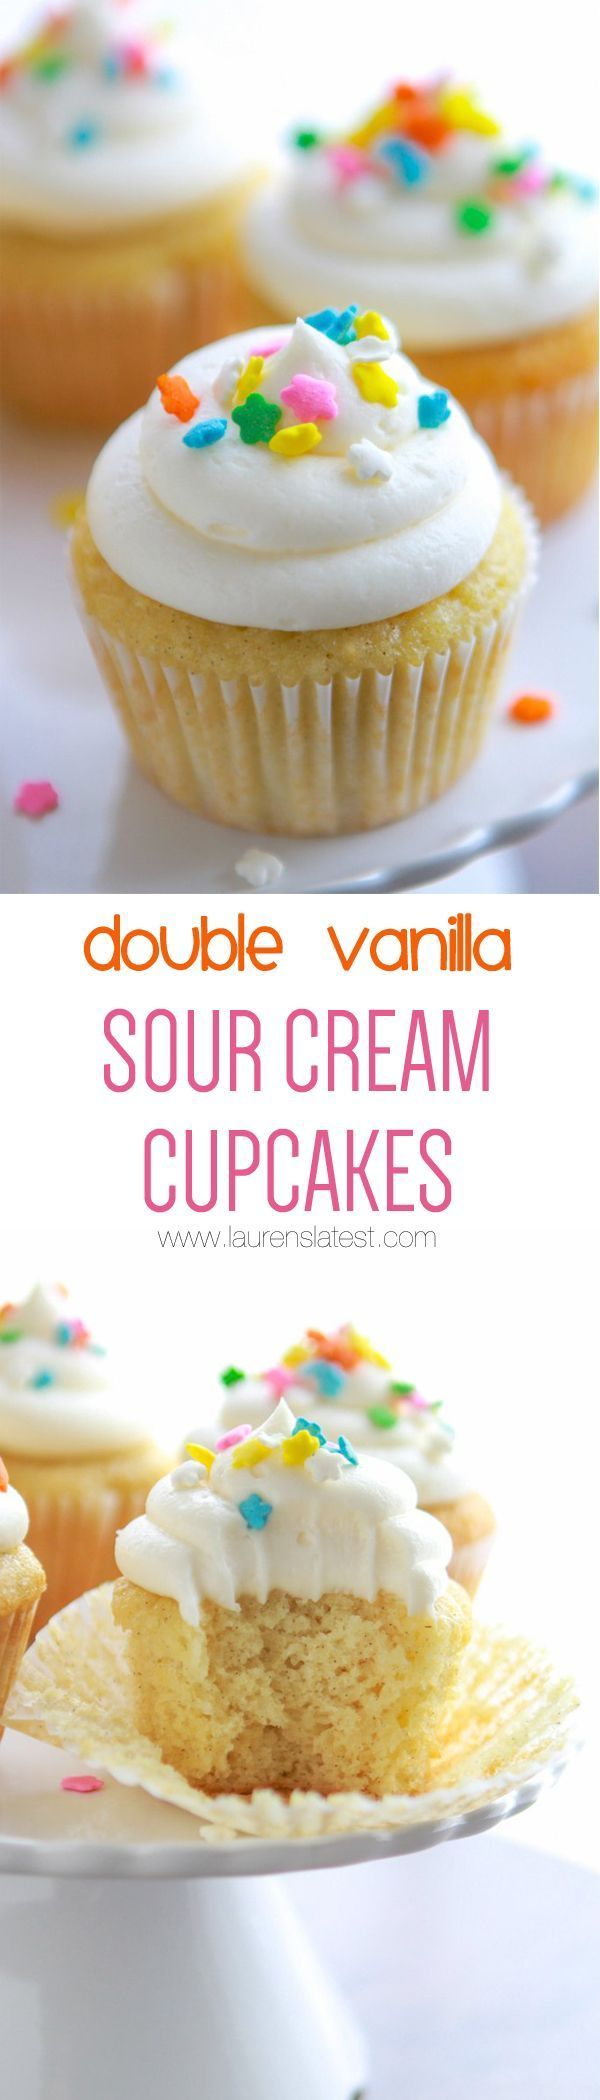 Double Vanilla Sour Cream Cupcakes... Soft and moist vanilla bean cupcakes with extra creamy vanilla frosting! These are for all you vanilla lovers out there! The best cupcakes everrrrr.